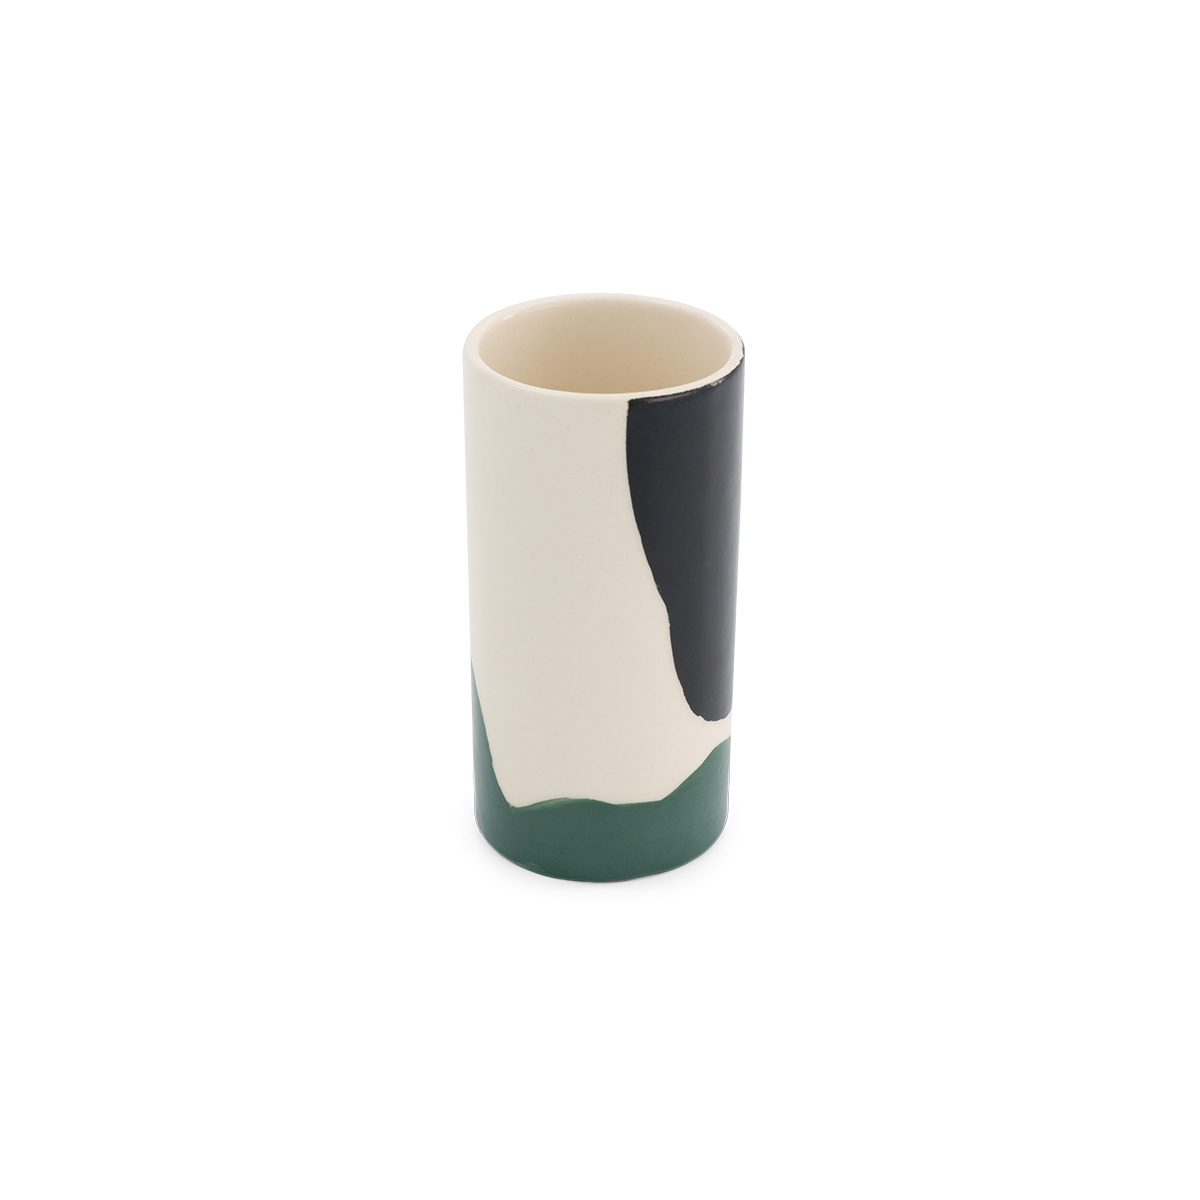 Domino pot small model with black and green pattern